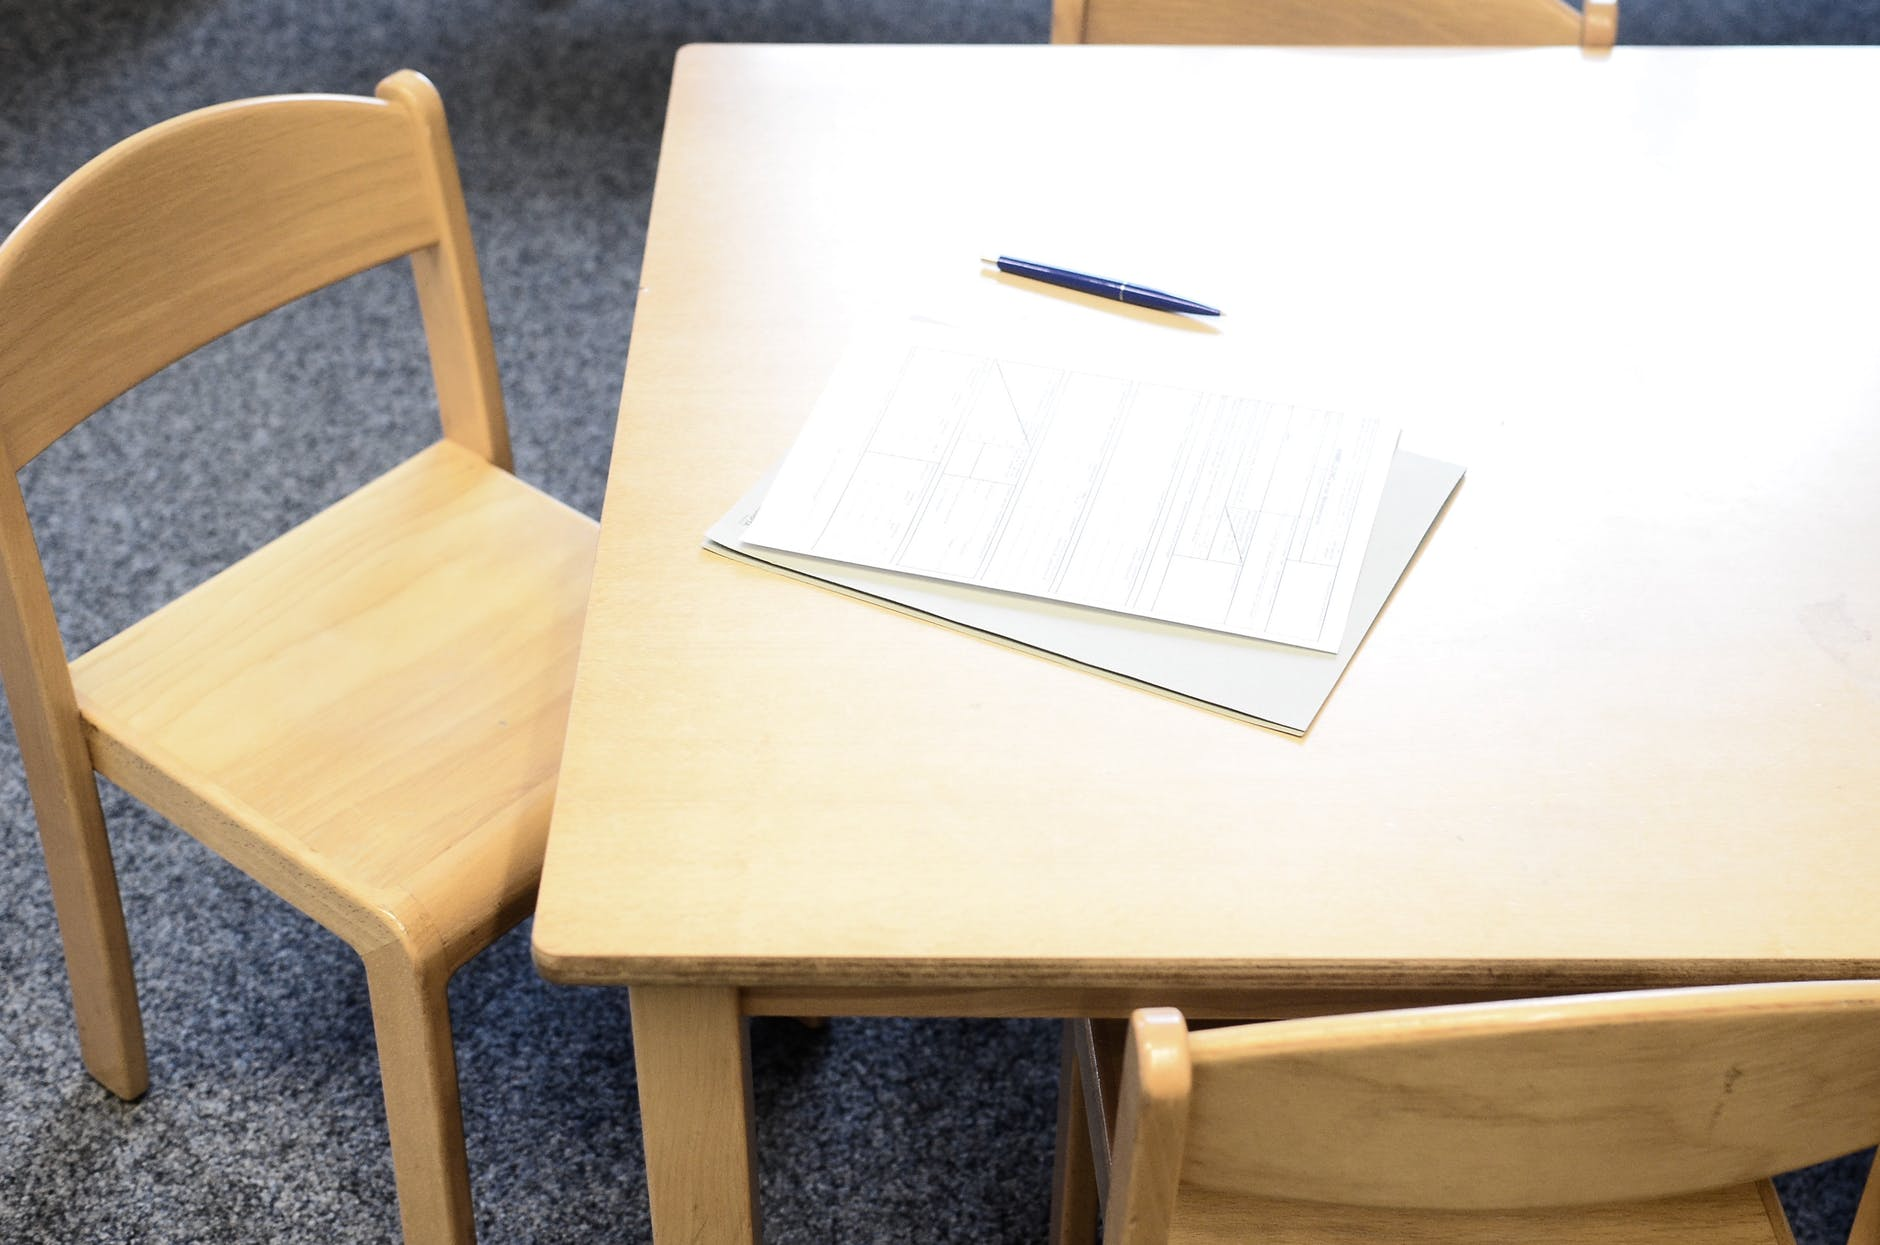 application sheet with pen on table in building